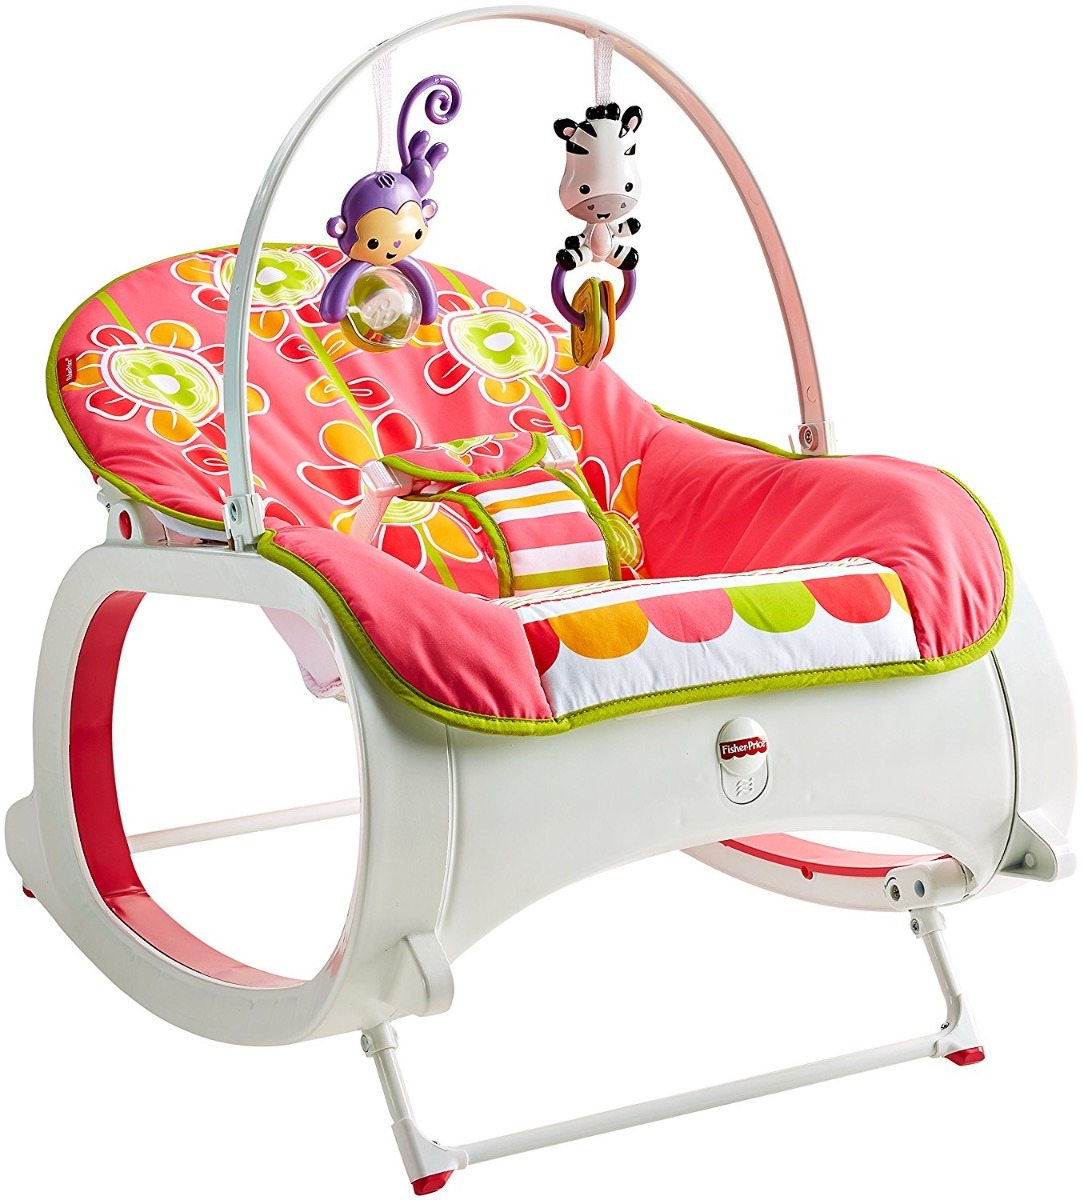 Silla Mecedora Beb Recin Nacido Antireflujo Fisher Price